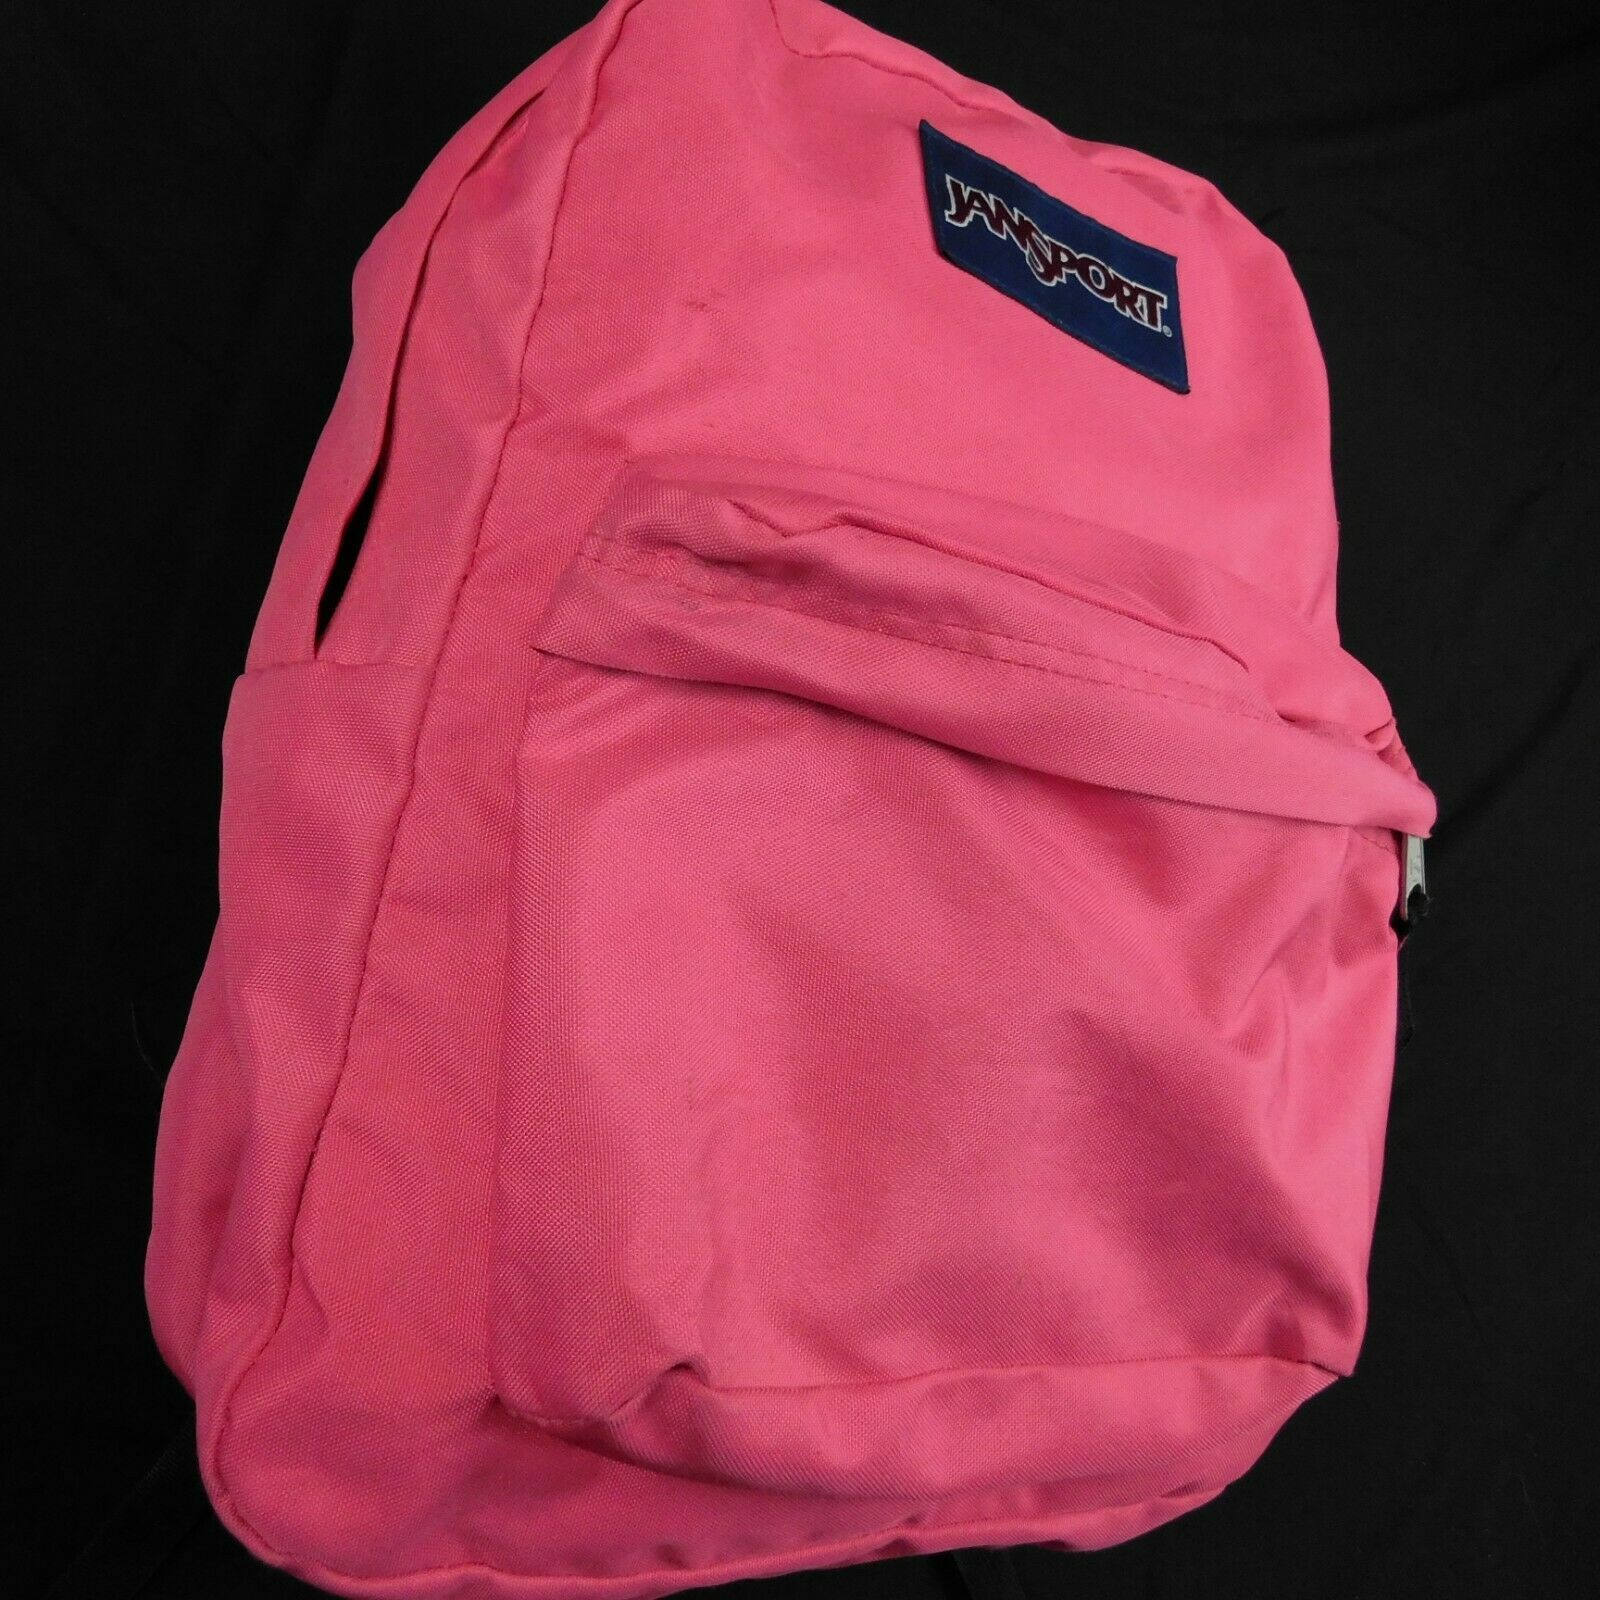 Primary image for JanSport Student Backpack Vibrant Pink Bright Hiking School Overnight